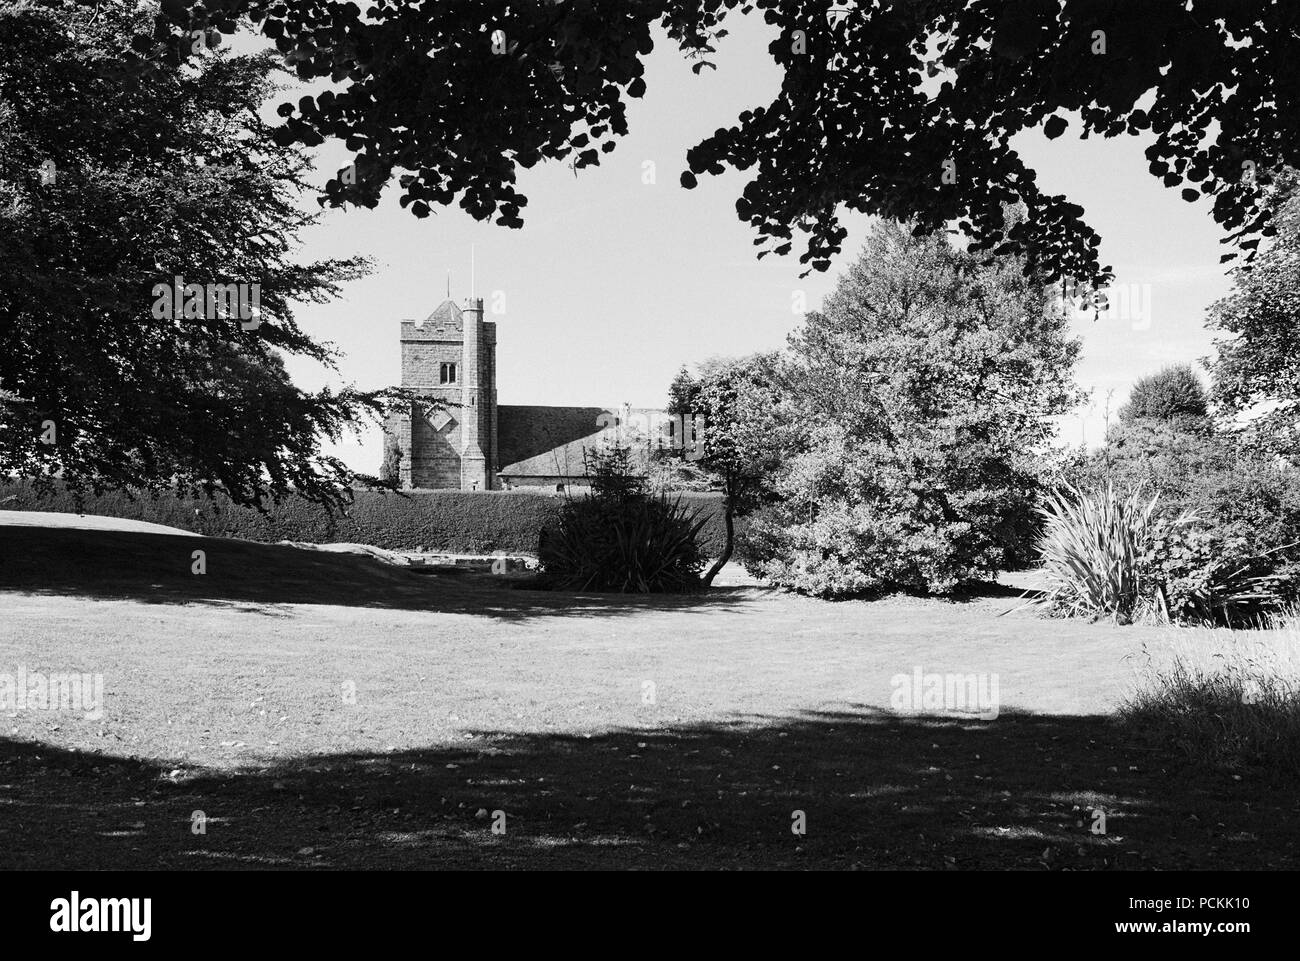 St Mary's church, Battle East Sussex, UK, viewed from the grounds of Battle Abbey, in summertime - Stock Image